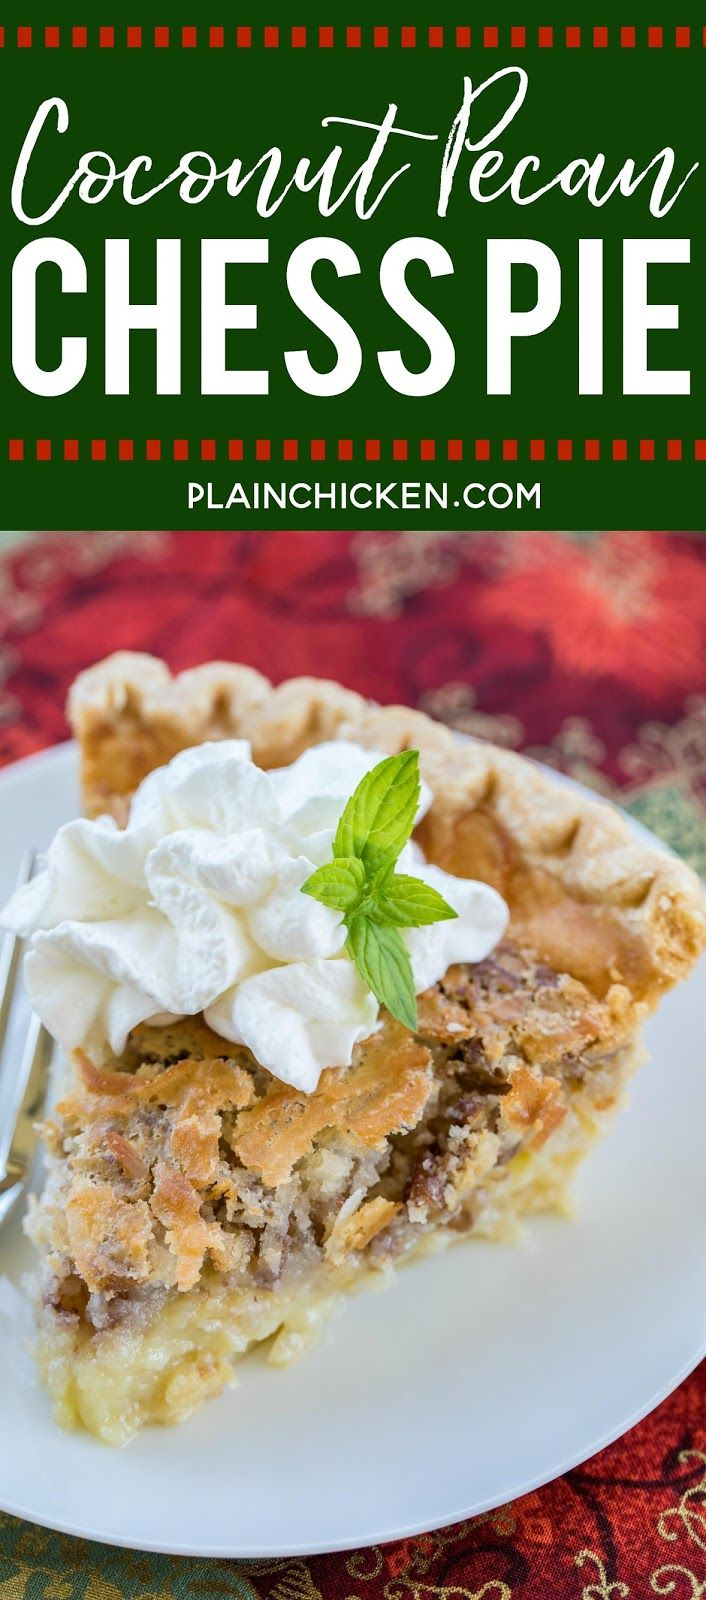 Coconut Pecan Chess Pie recipe –  two favorites in one dessert! Quick and delici…